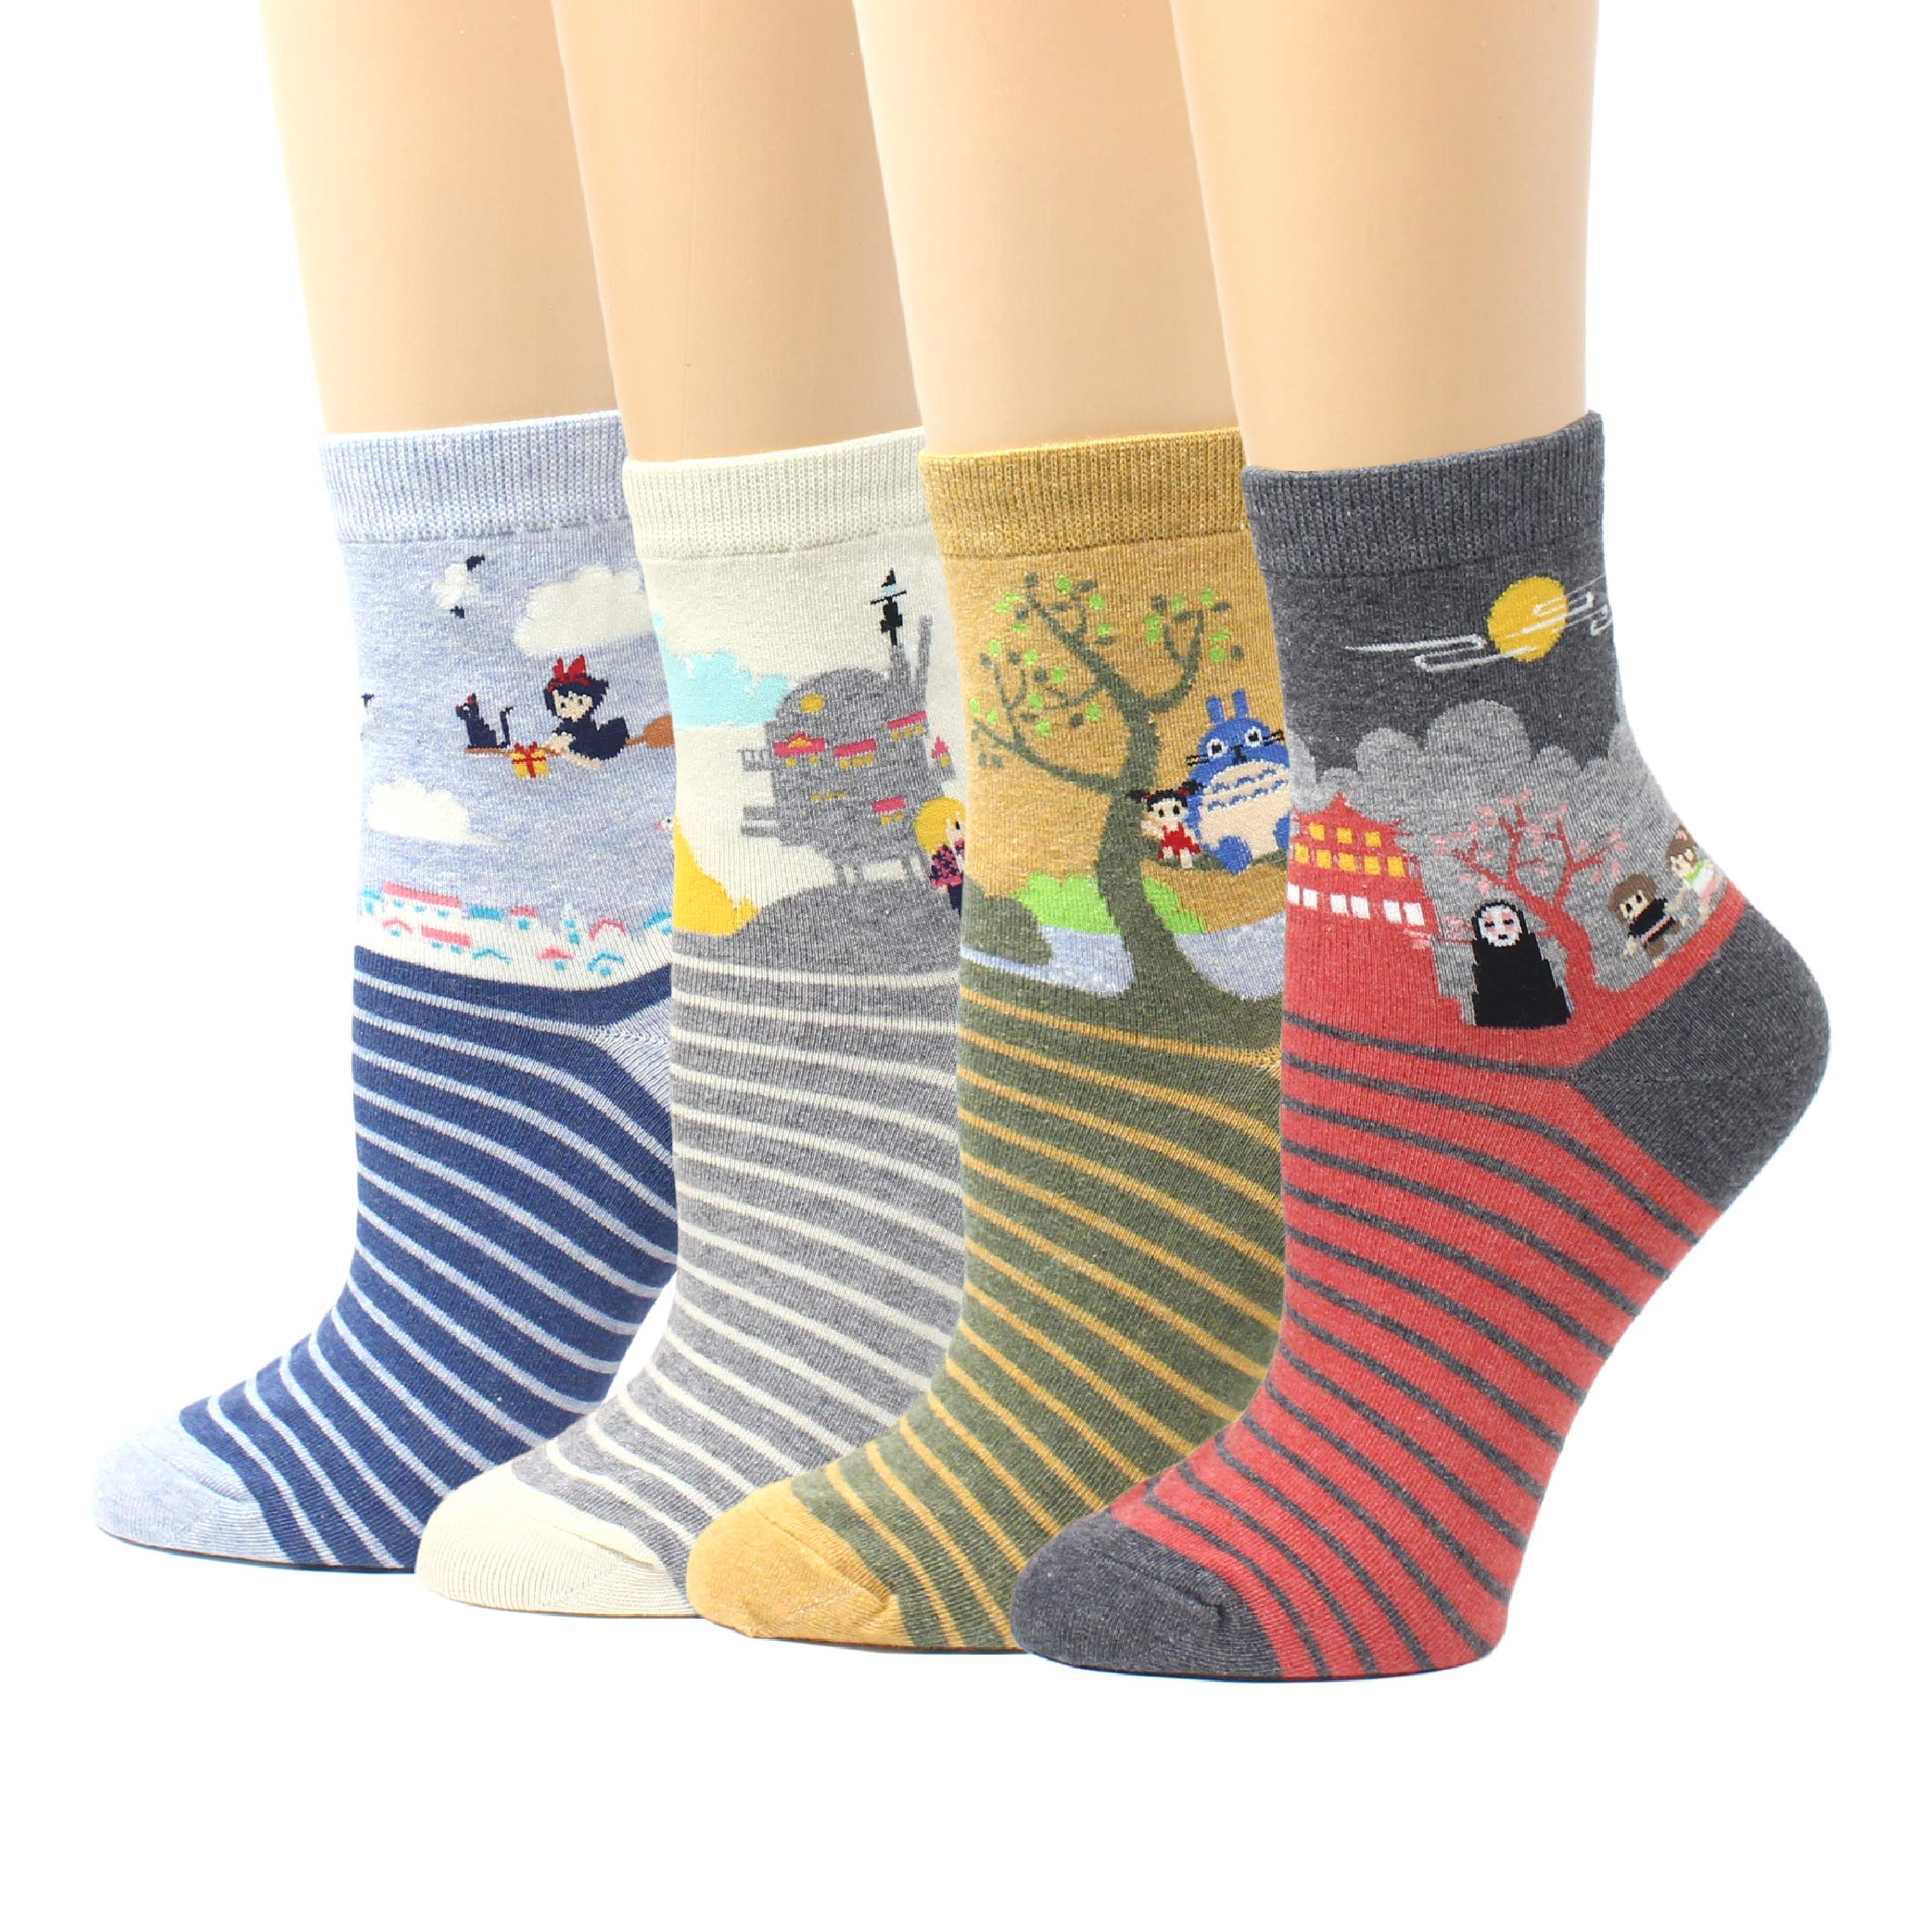 a79b8379e LIVEBEAR Women s 4 5 Pair Cute Large Print Funny Novelty Crew Socks Made In  Korea